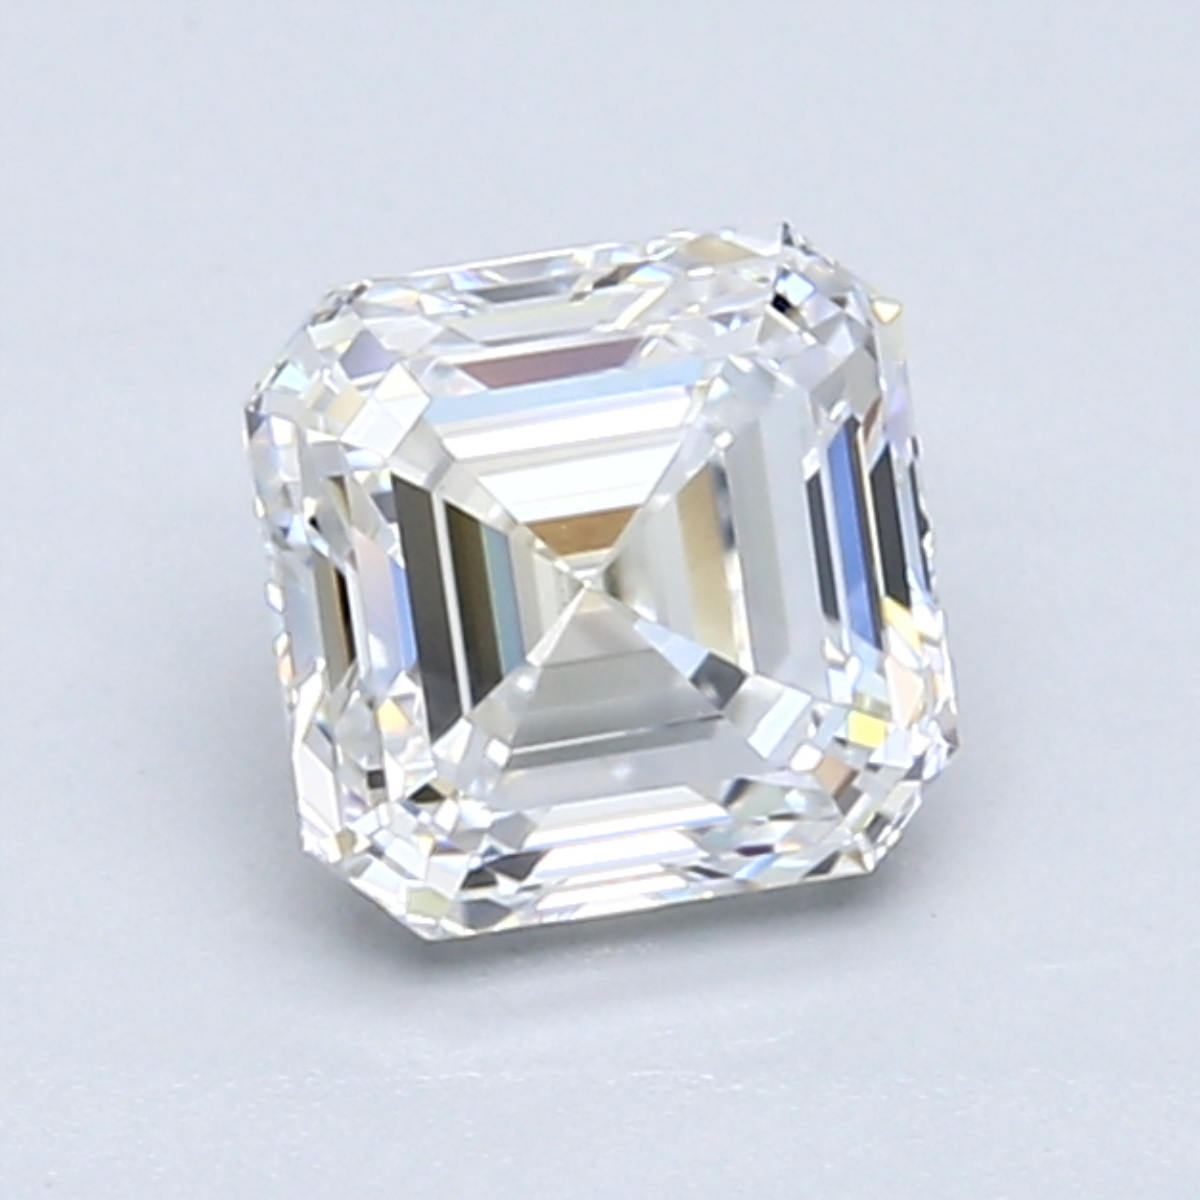 1.30 carat Asscher Diamond, Very Good cut, graded by the GIA laboratories.